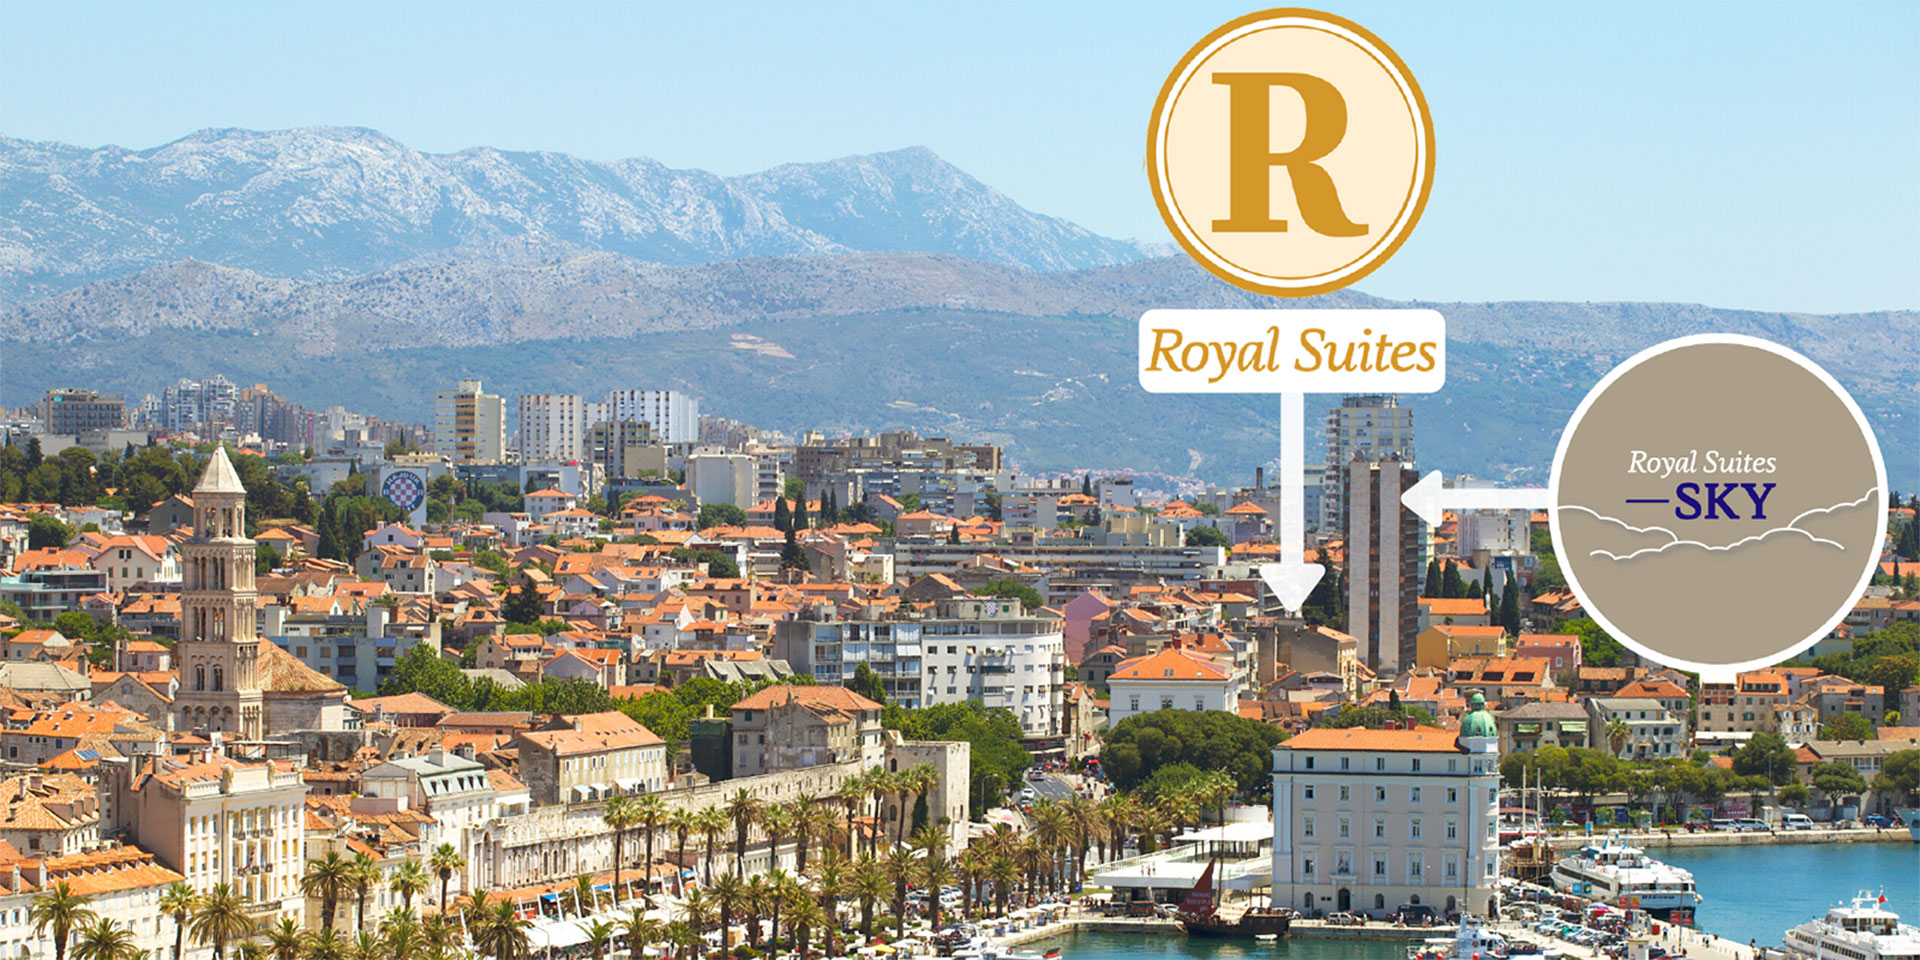 Royal Suites family run hotel close to ferry port, Diocletians palace and old town Split center